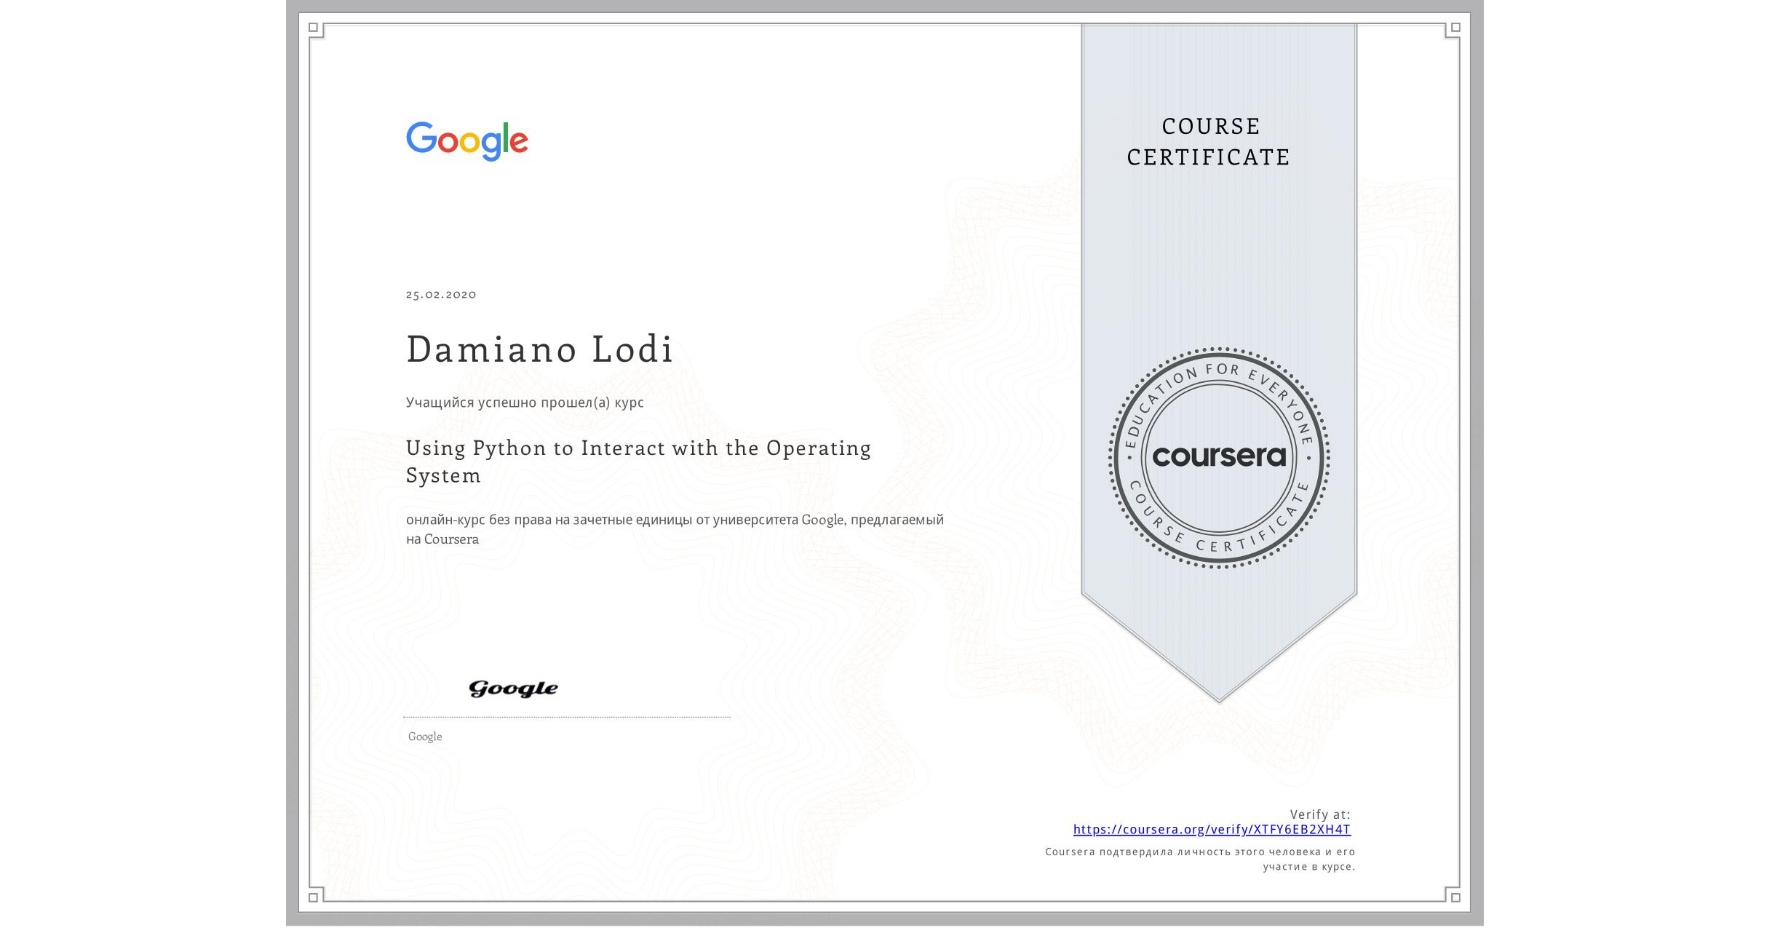 View certificate for Damiano Lodi, Using Python to Interact with the Operating System, an online non-credit course authorized by Google and offered through Coursera